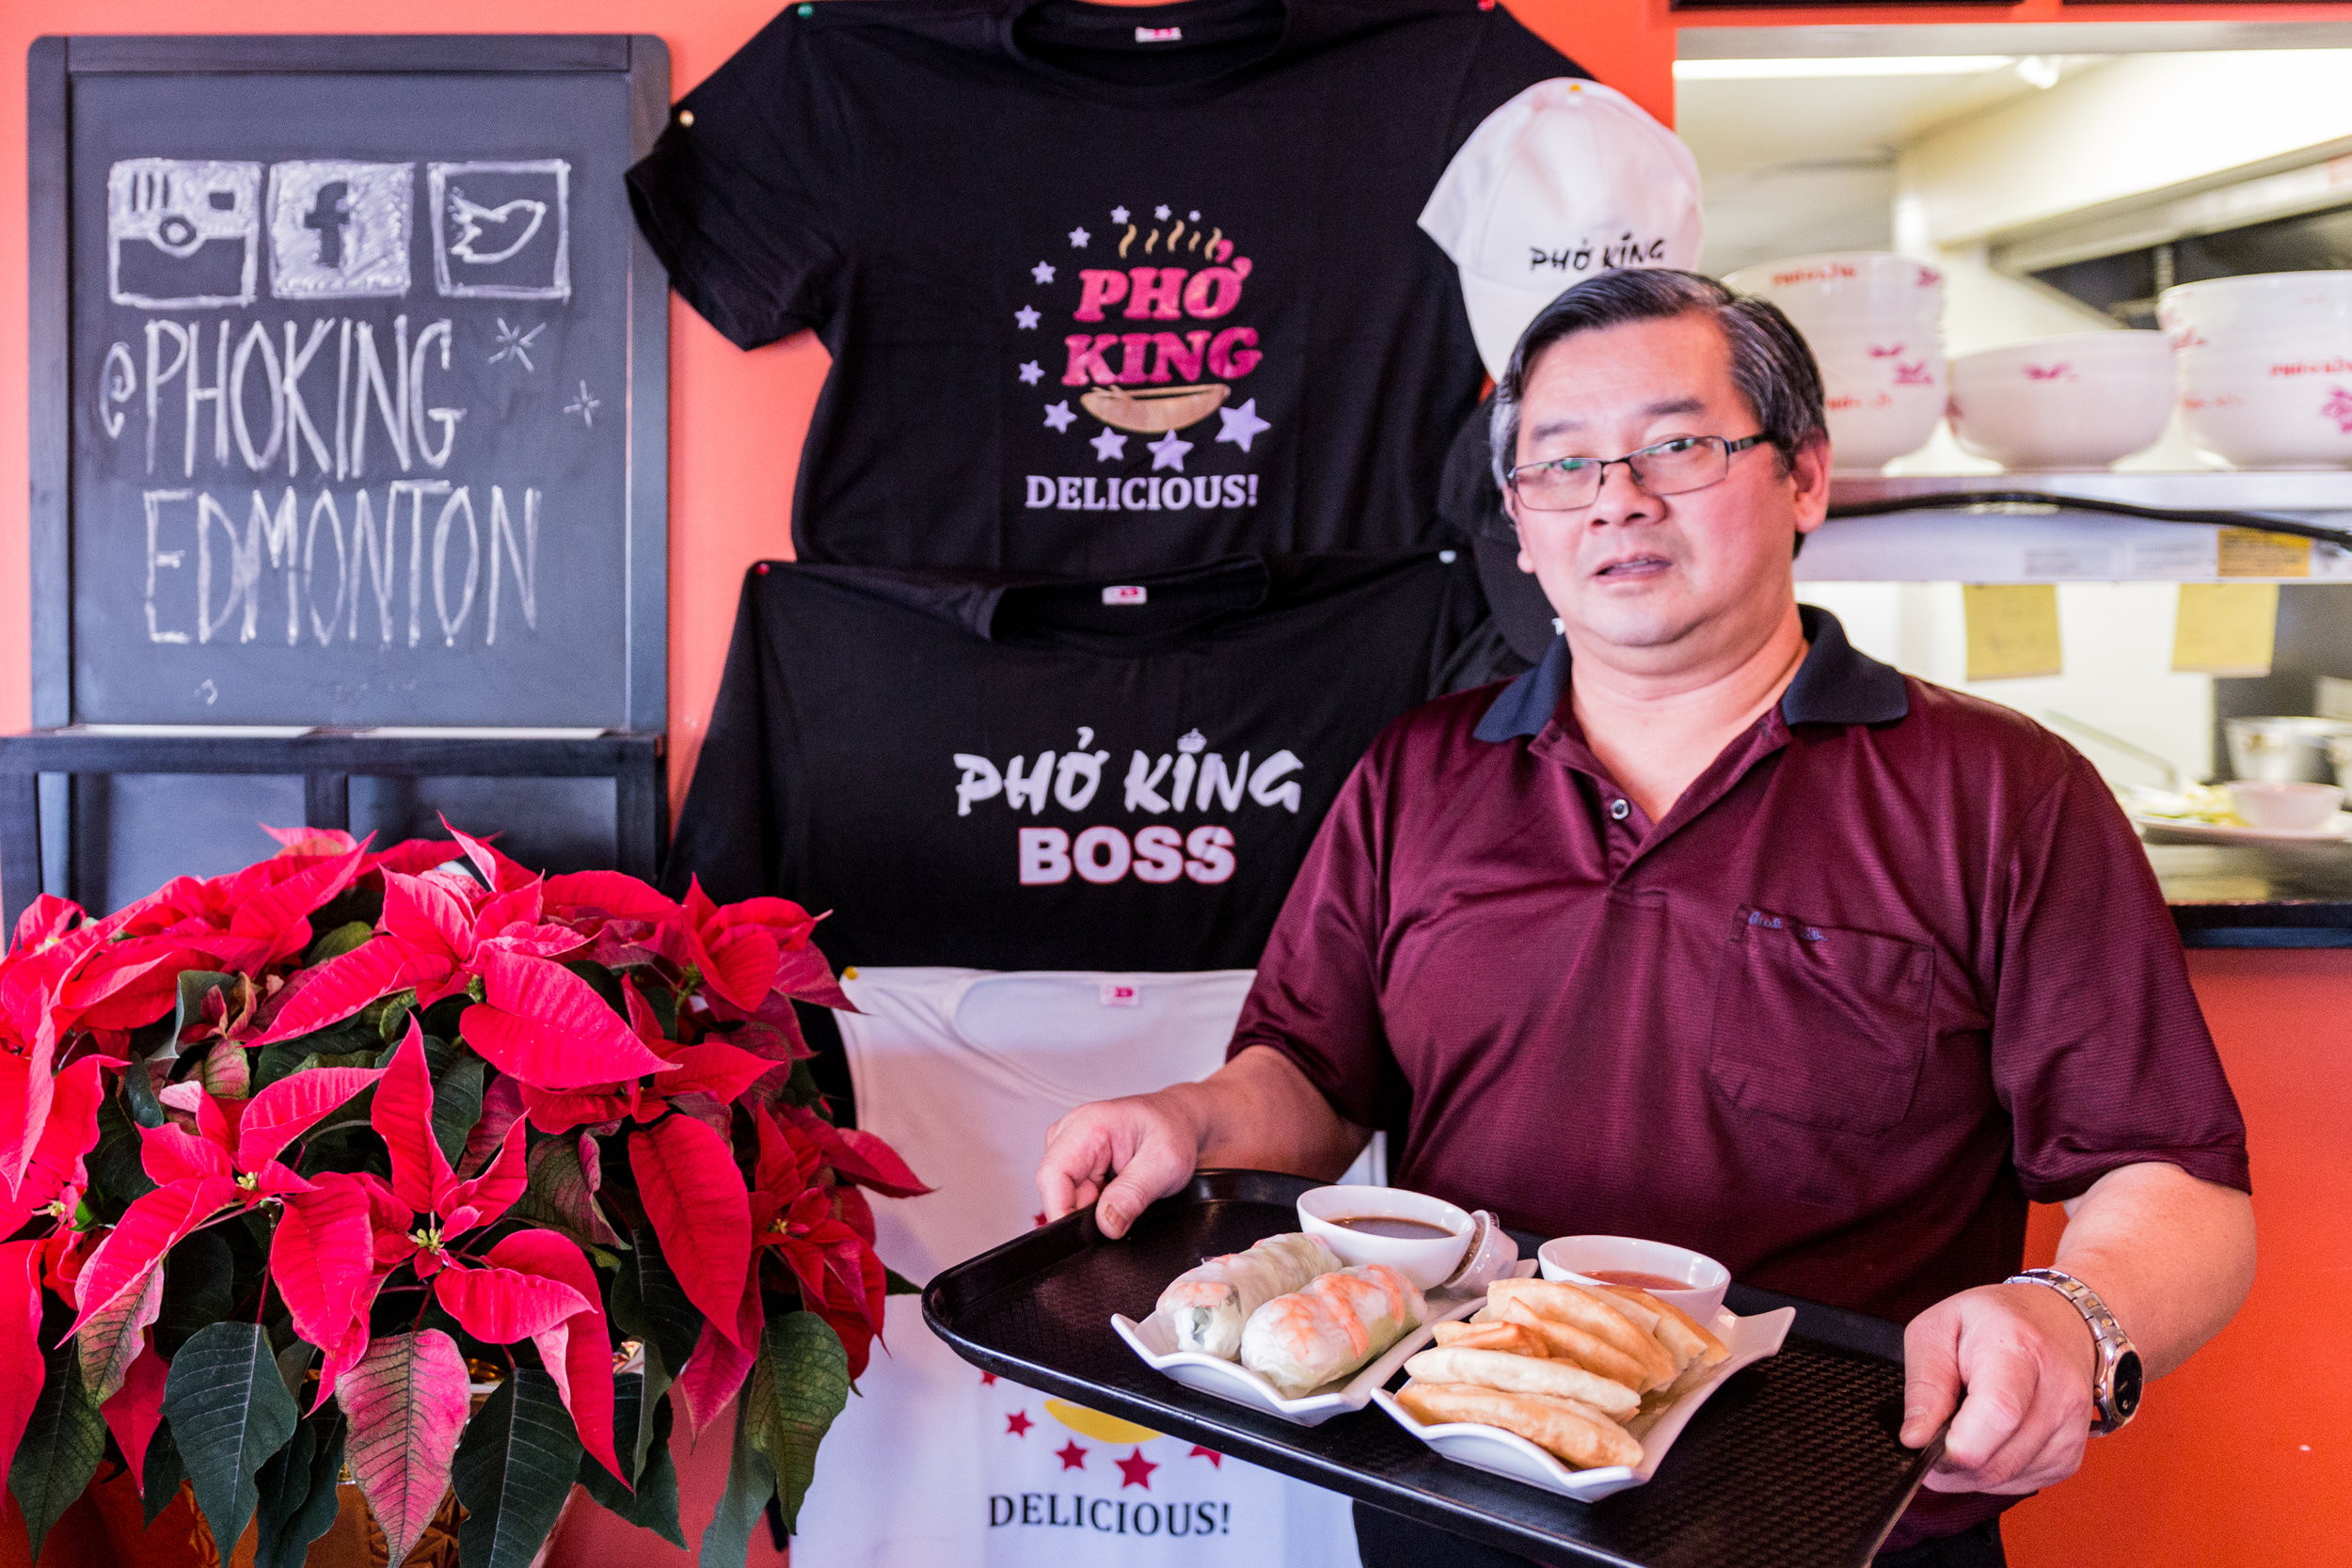 Ahson Nguyen and family opened Pho King in 2010. This Alberta Avenue mainstay uses the freshest and highest quality ingredients together to create food inspired by the traditional flavours of Vietnam.